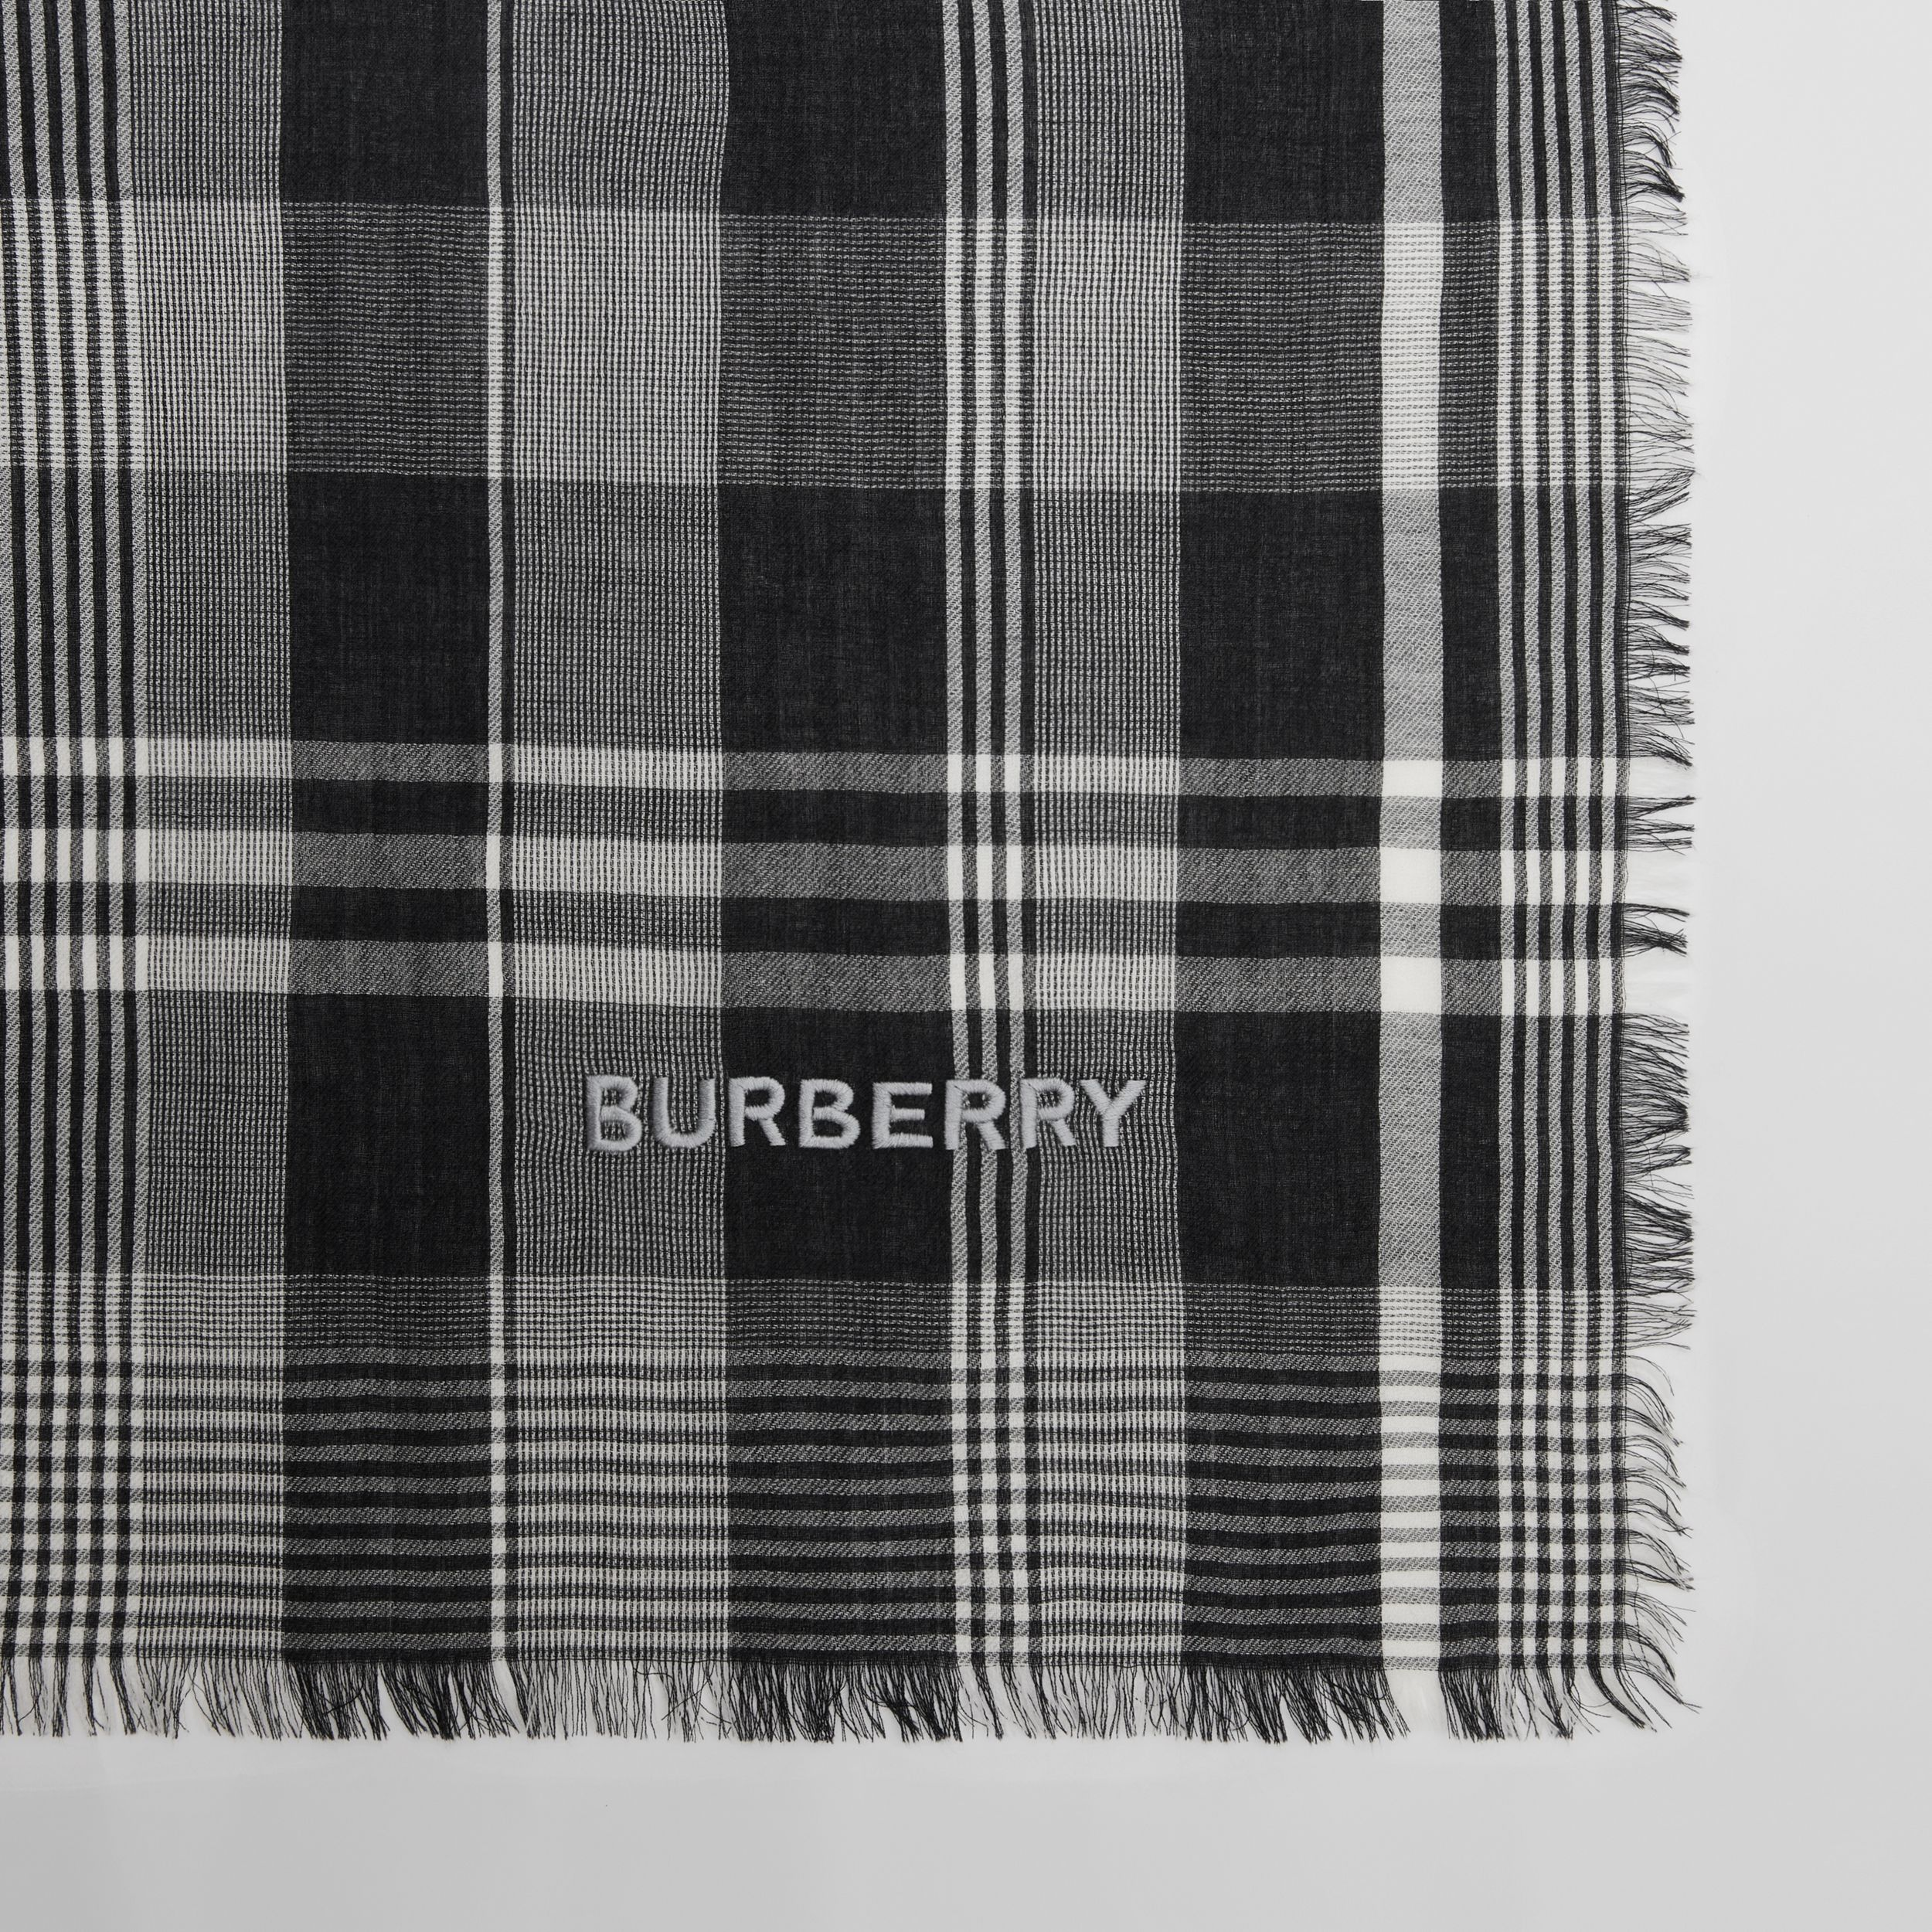 Logo Embroidered Lightweight Check Cashmere Scarf in Black/white | Burberry - 2